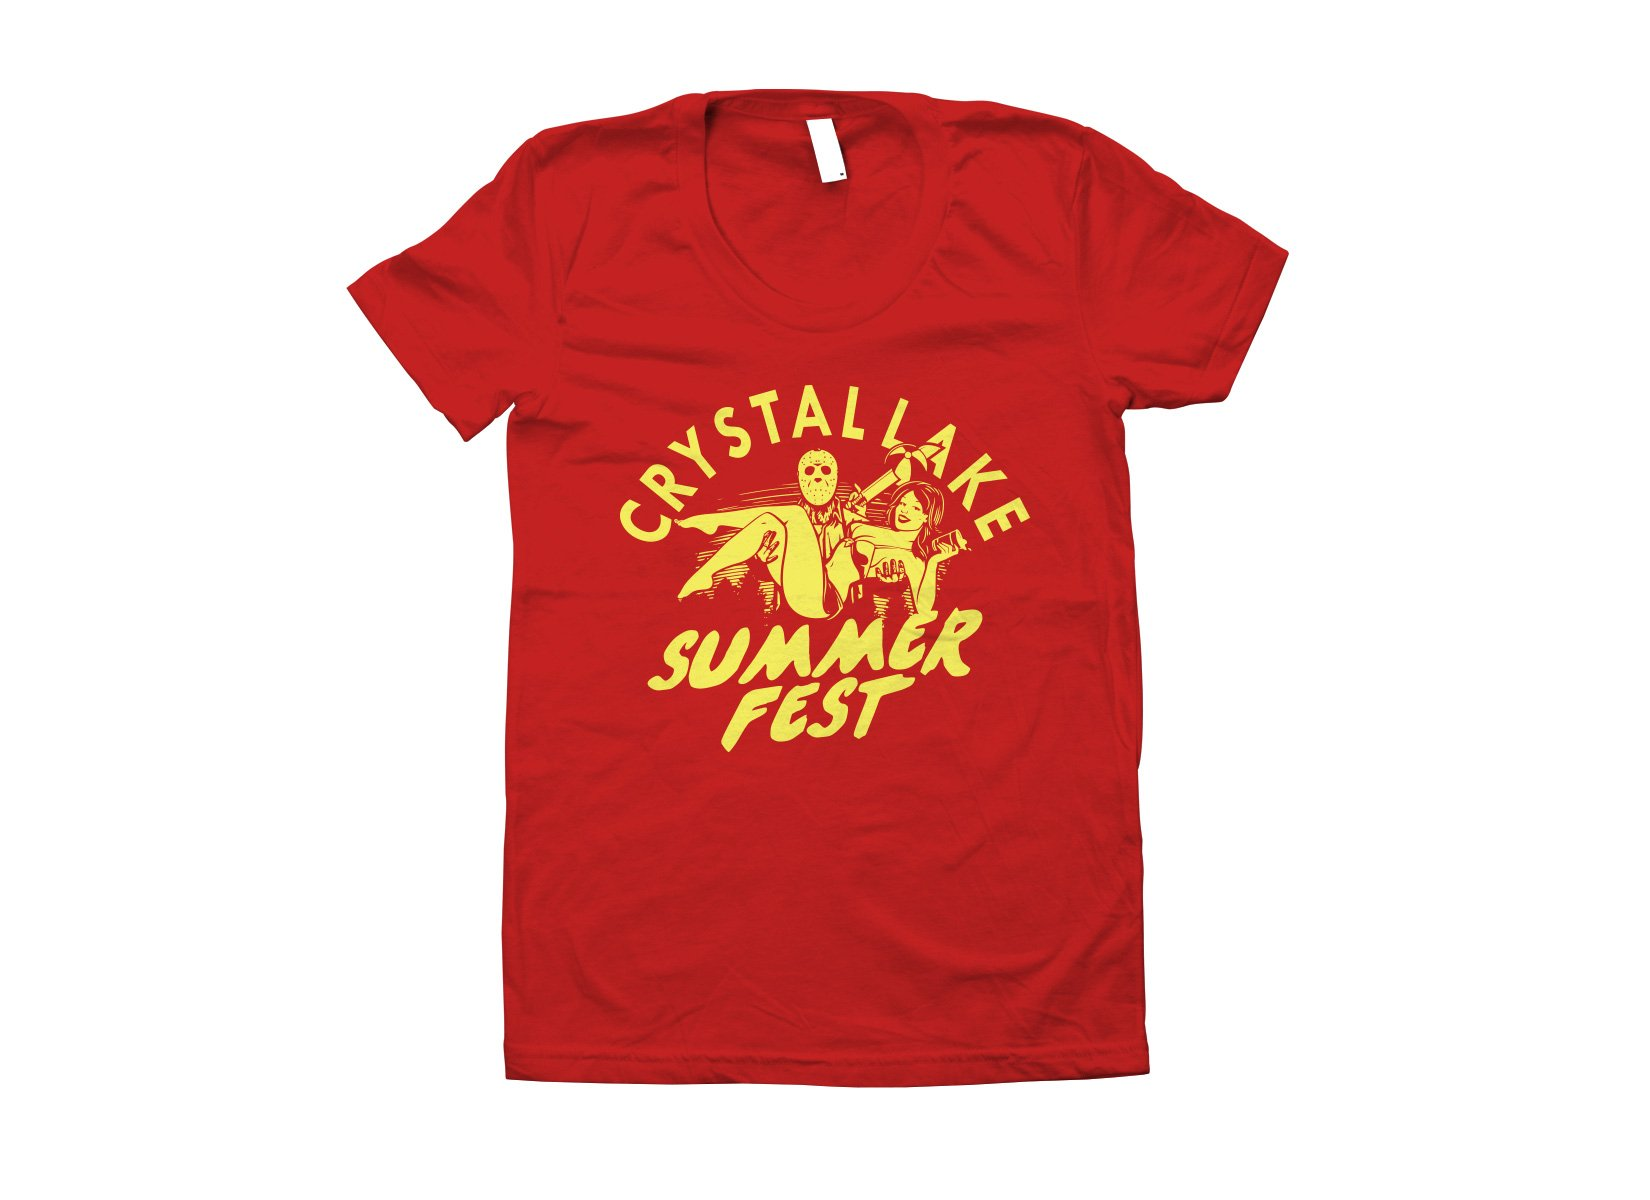 Crystal Lake Summer Fest on Juniors T-Shirt